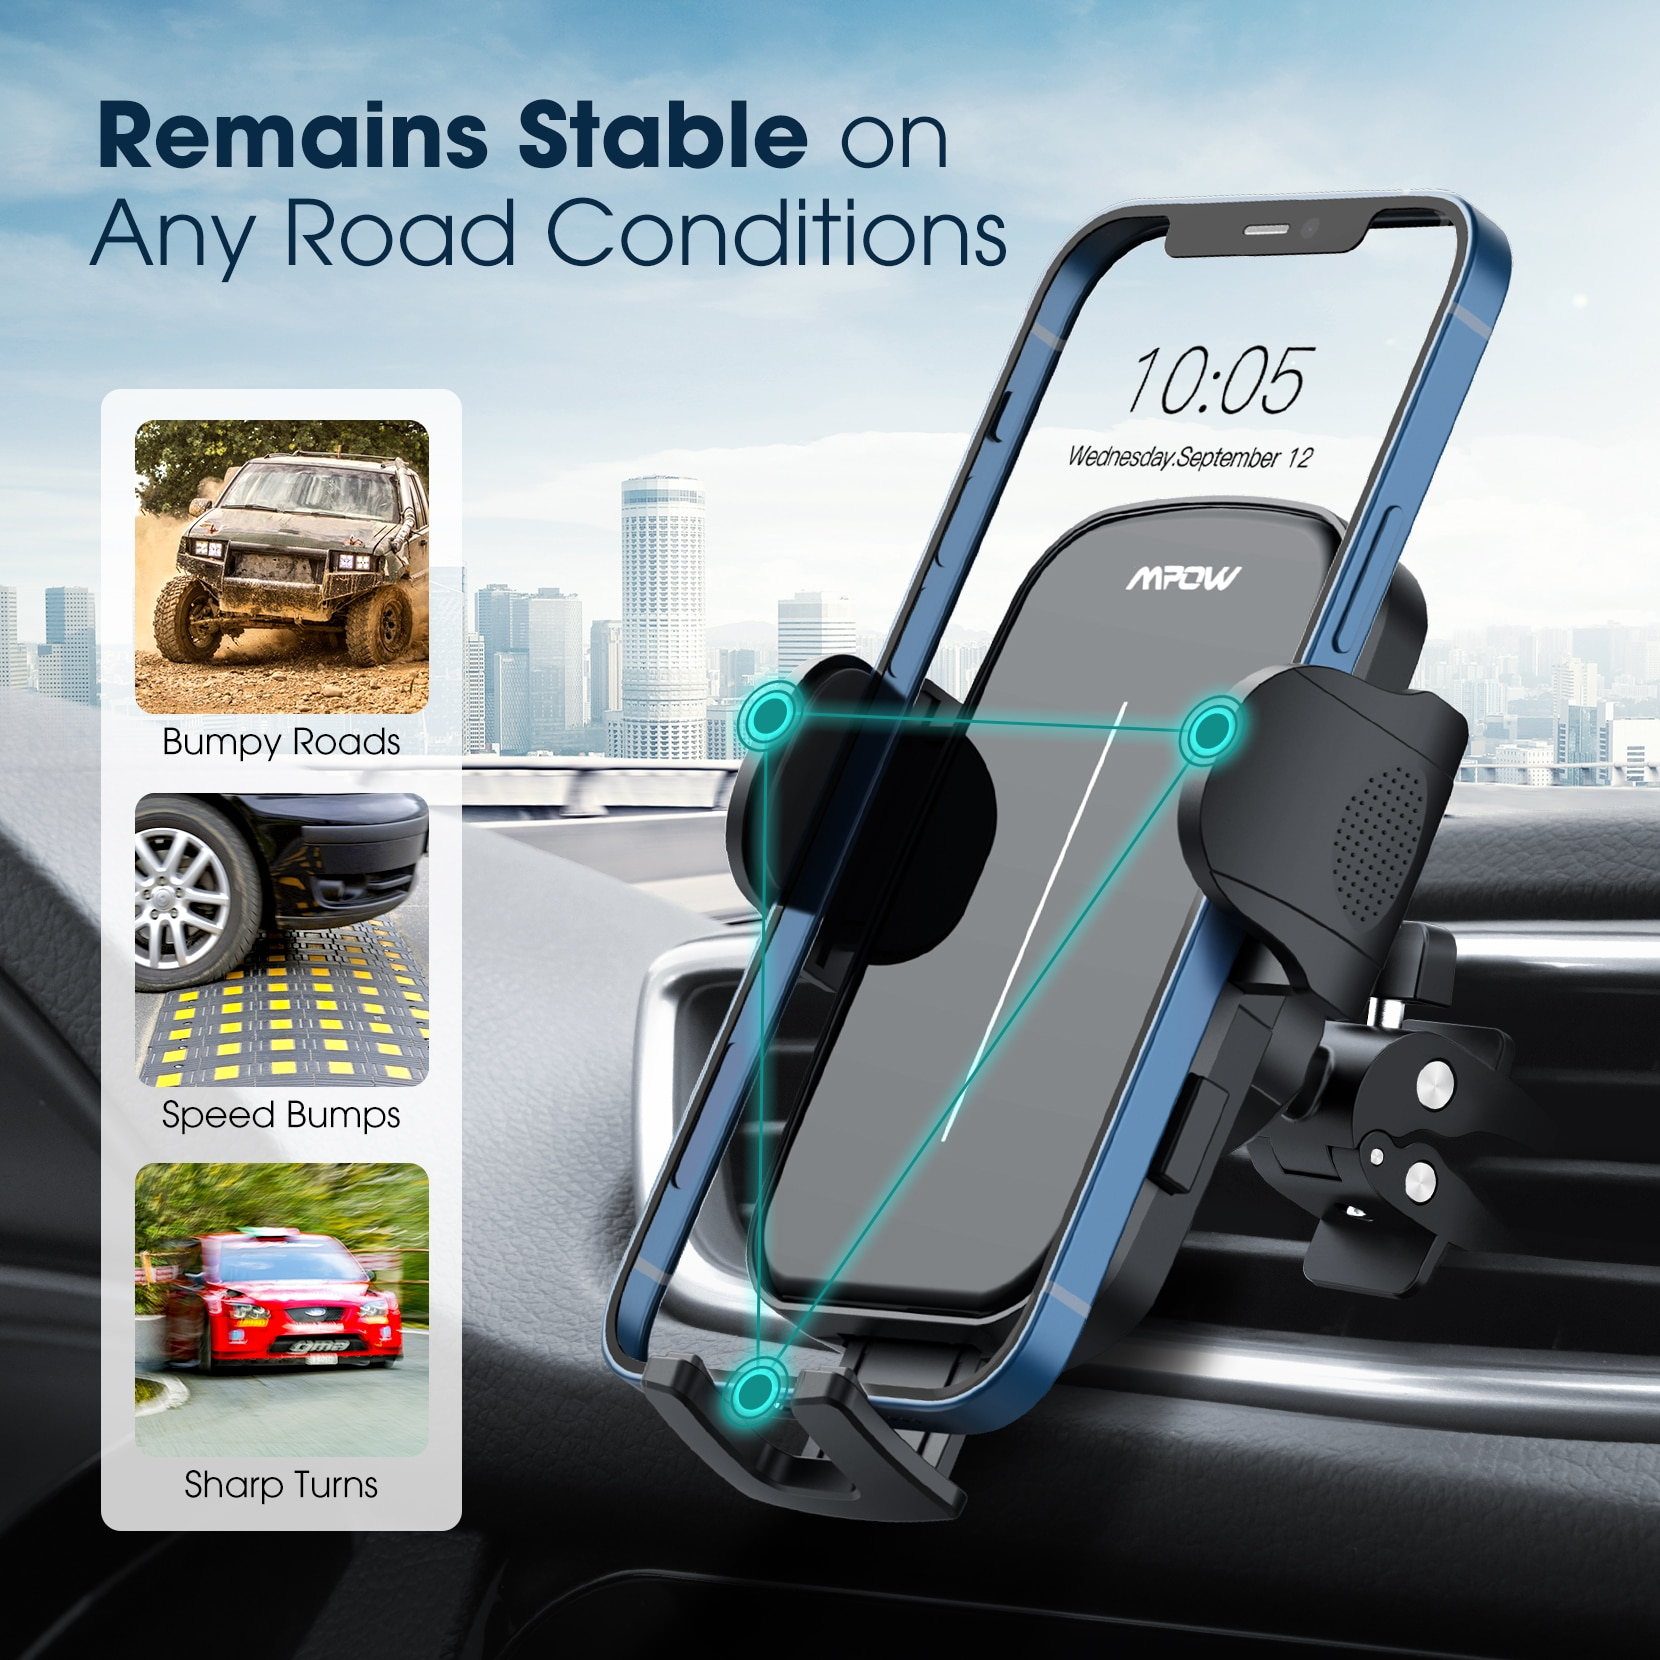 H5e6520a045974acfa96fdcb45963ca37I - Mpow CA174 Universal Car Phone Mount Air Vent Car Phone Holder with Stable Clip Compatible with iPhone 12 11 Pro Max XS 8 Galaxy